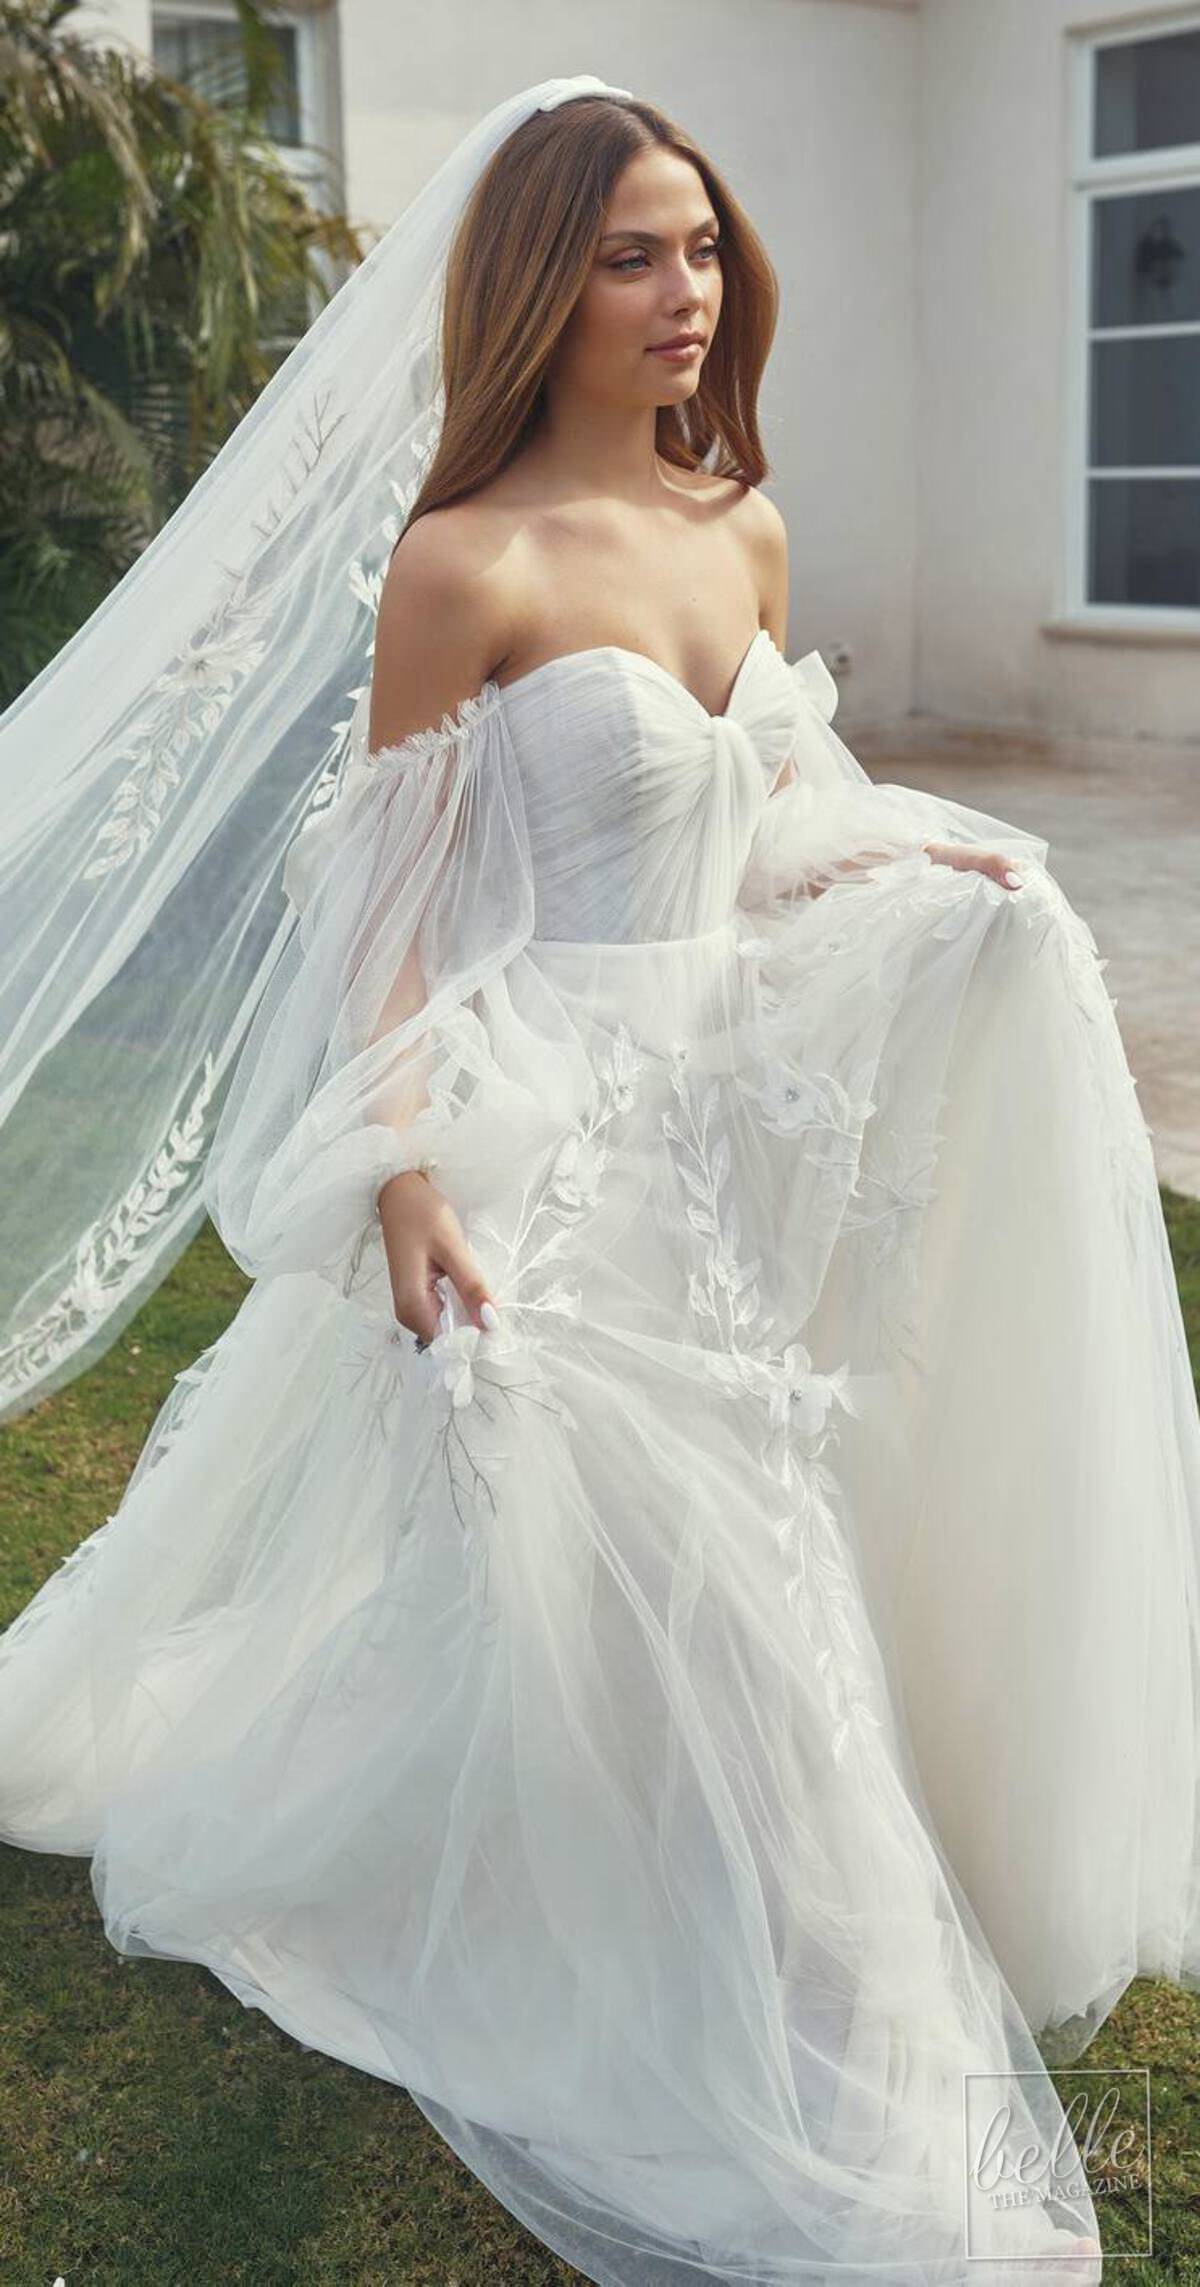 Wedding dress trends 2021 - Puff Sleeves - Lihi Hod Couture Collection Spring 2022